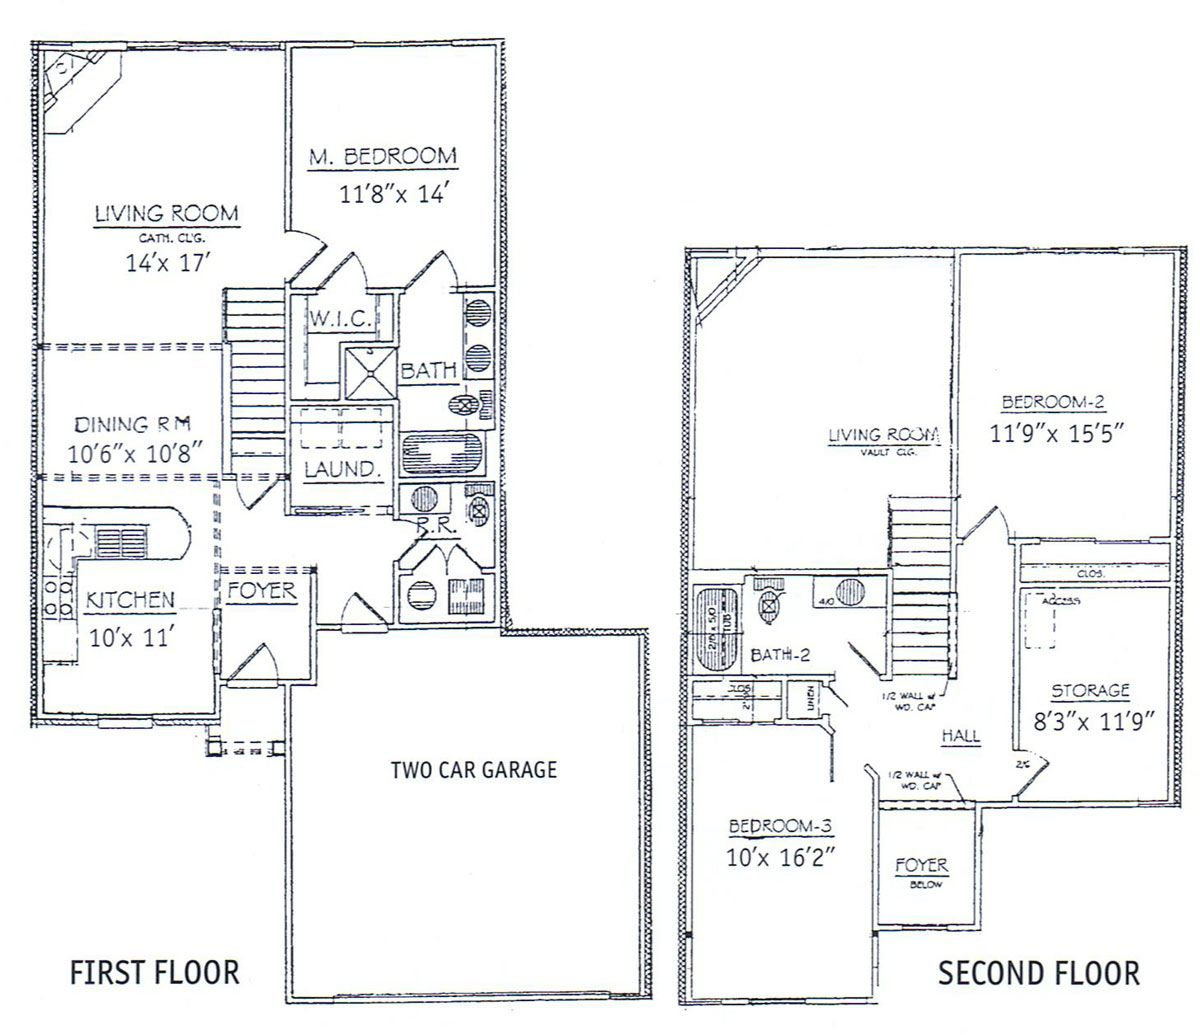 3 bedrooms floor plans 2 story bdrm basement the two Townhouse layout 3 bedrooms